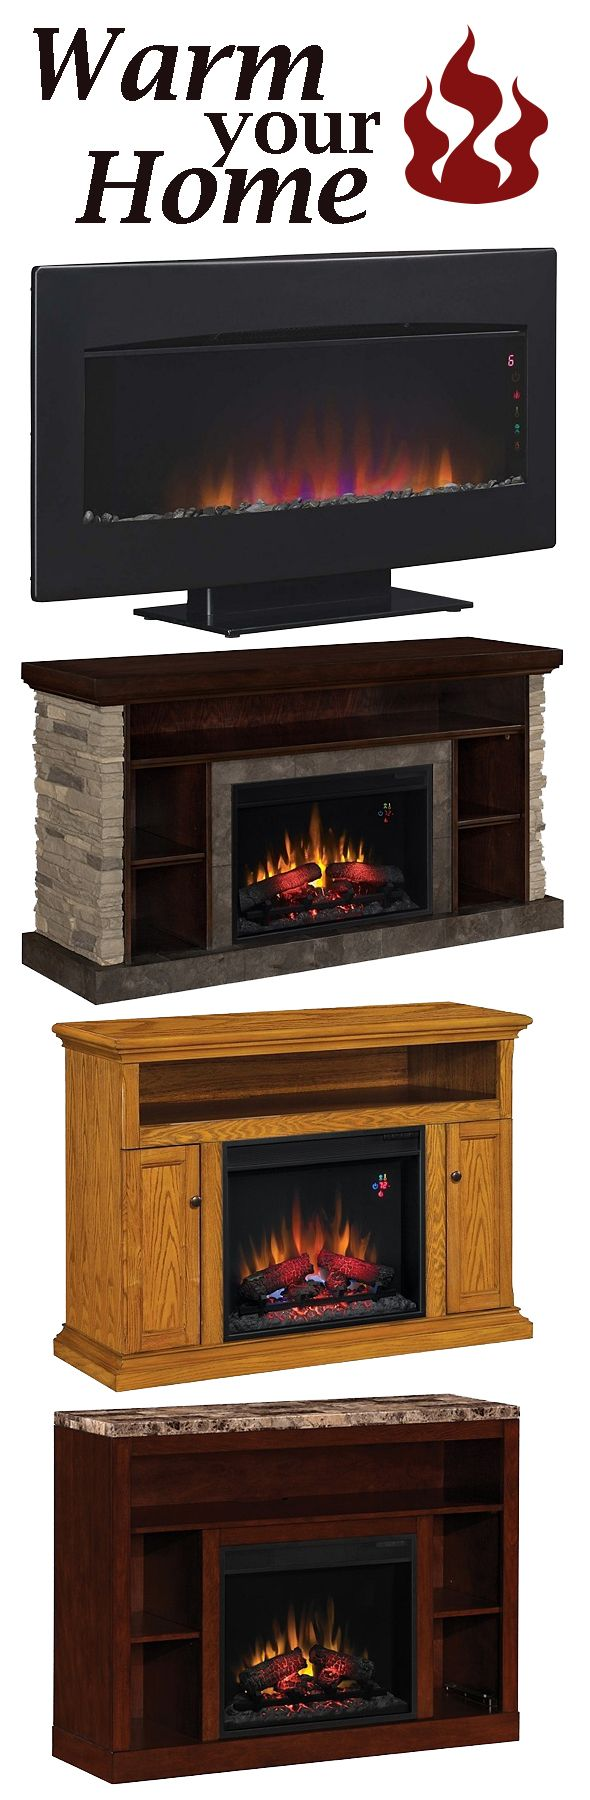 12 best images about Interior Decorating Fireplaces on